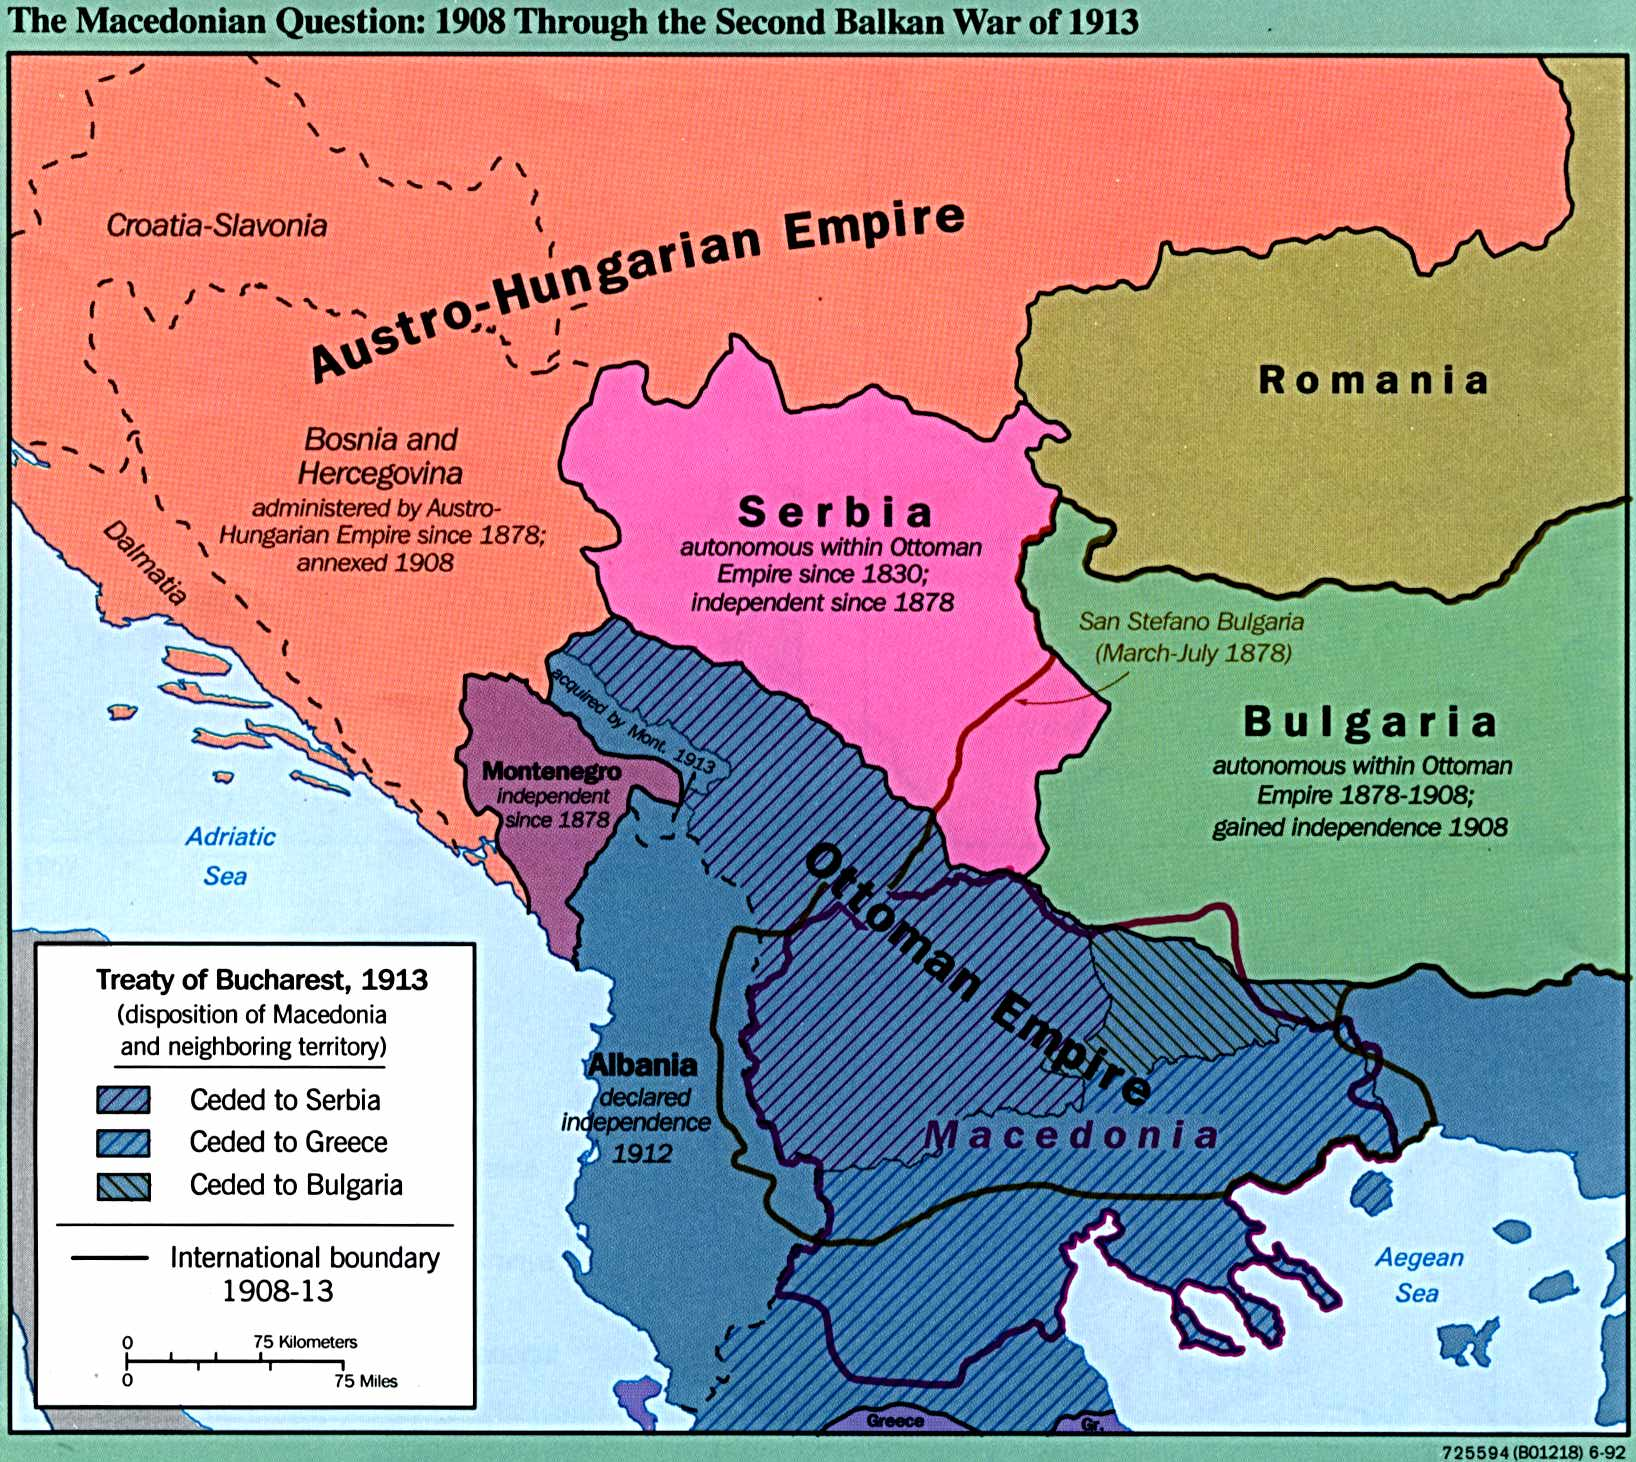 Former Yugoslavia Maps - Perry-Castañeda Map Collection - UT Liry on greece on world map, france on world map, ukraine on world map, dalmatia on world map, turkey on world map, nicaragua on world map, switzerland on world map, zaire on world map, darfur on world map, europe on world map, ussr on world map, albania on world map, isreal on world map, hungary on world map, belgium on world map, iraq on world map, pakistan on world map, serbia map, ireland on world map, argentina on world map,